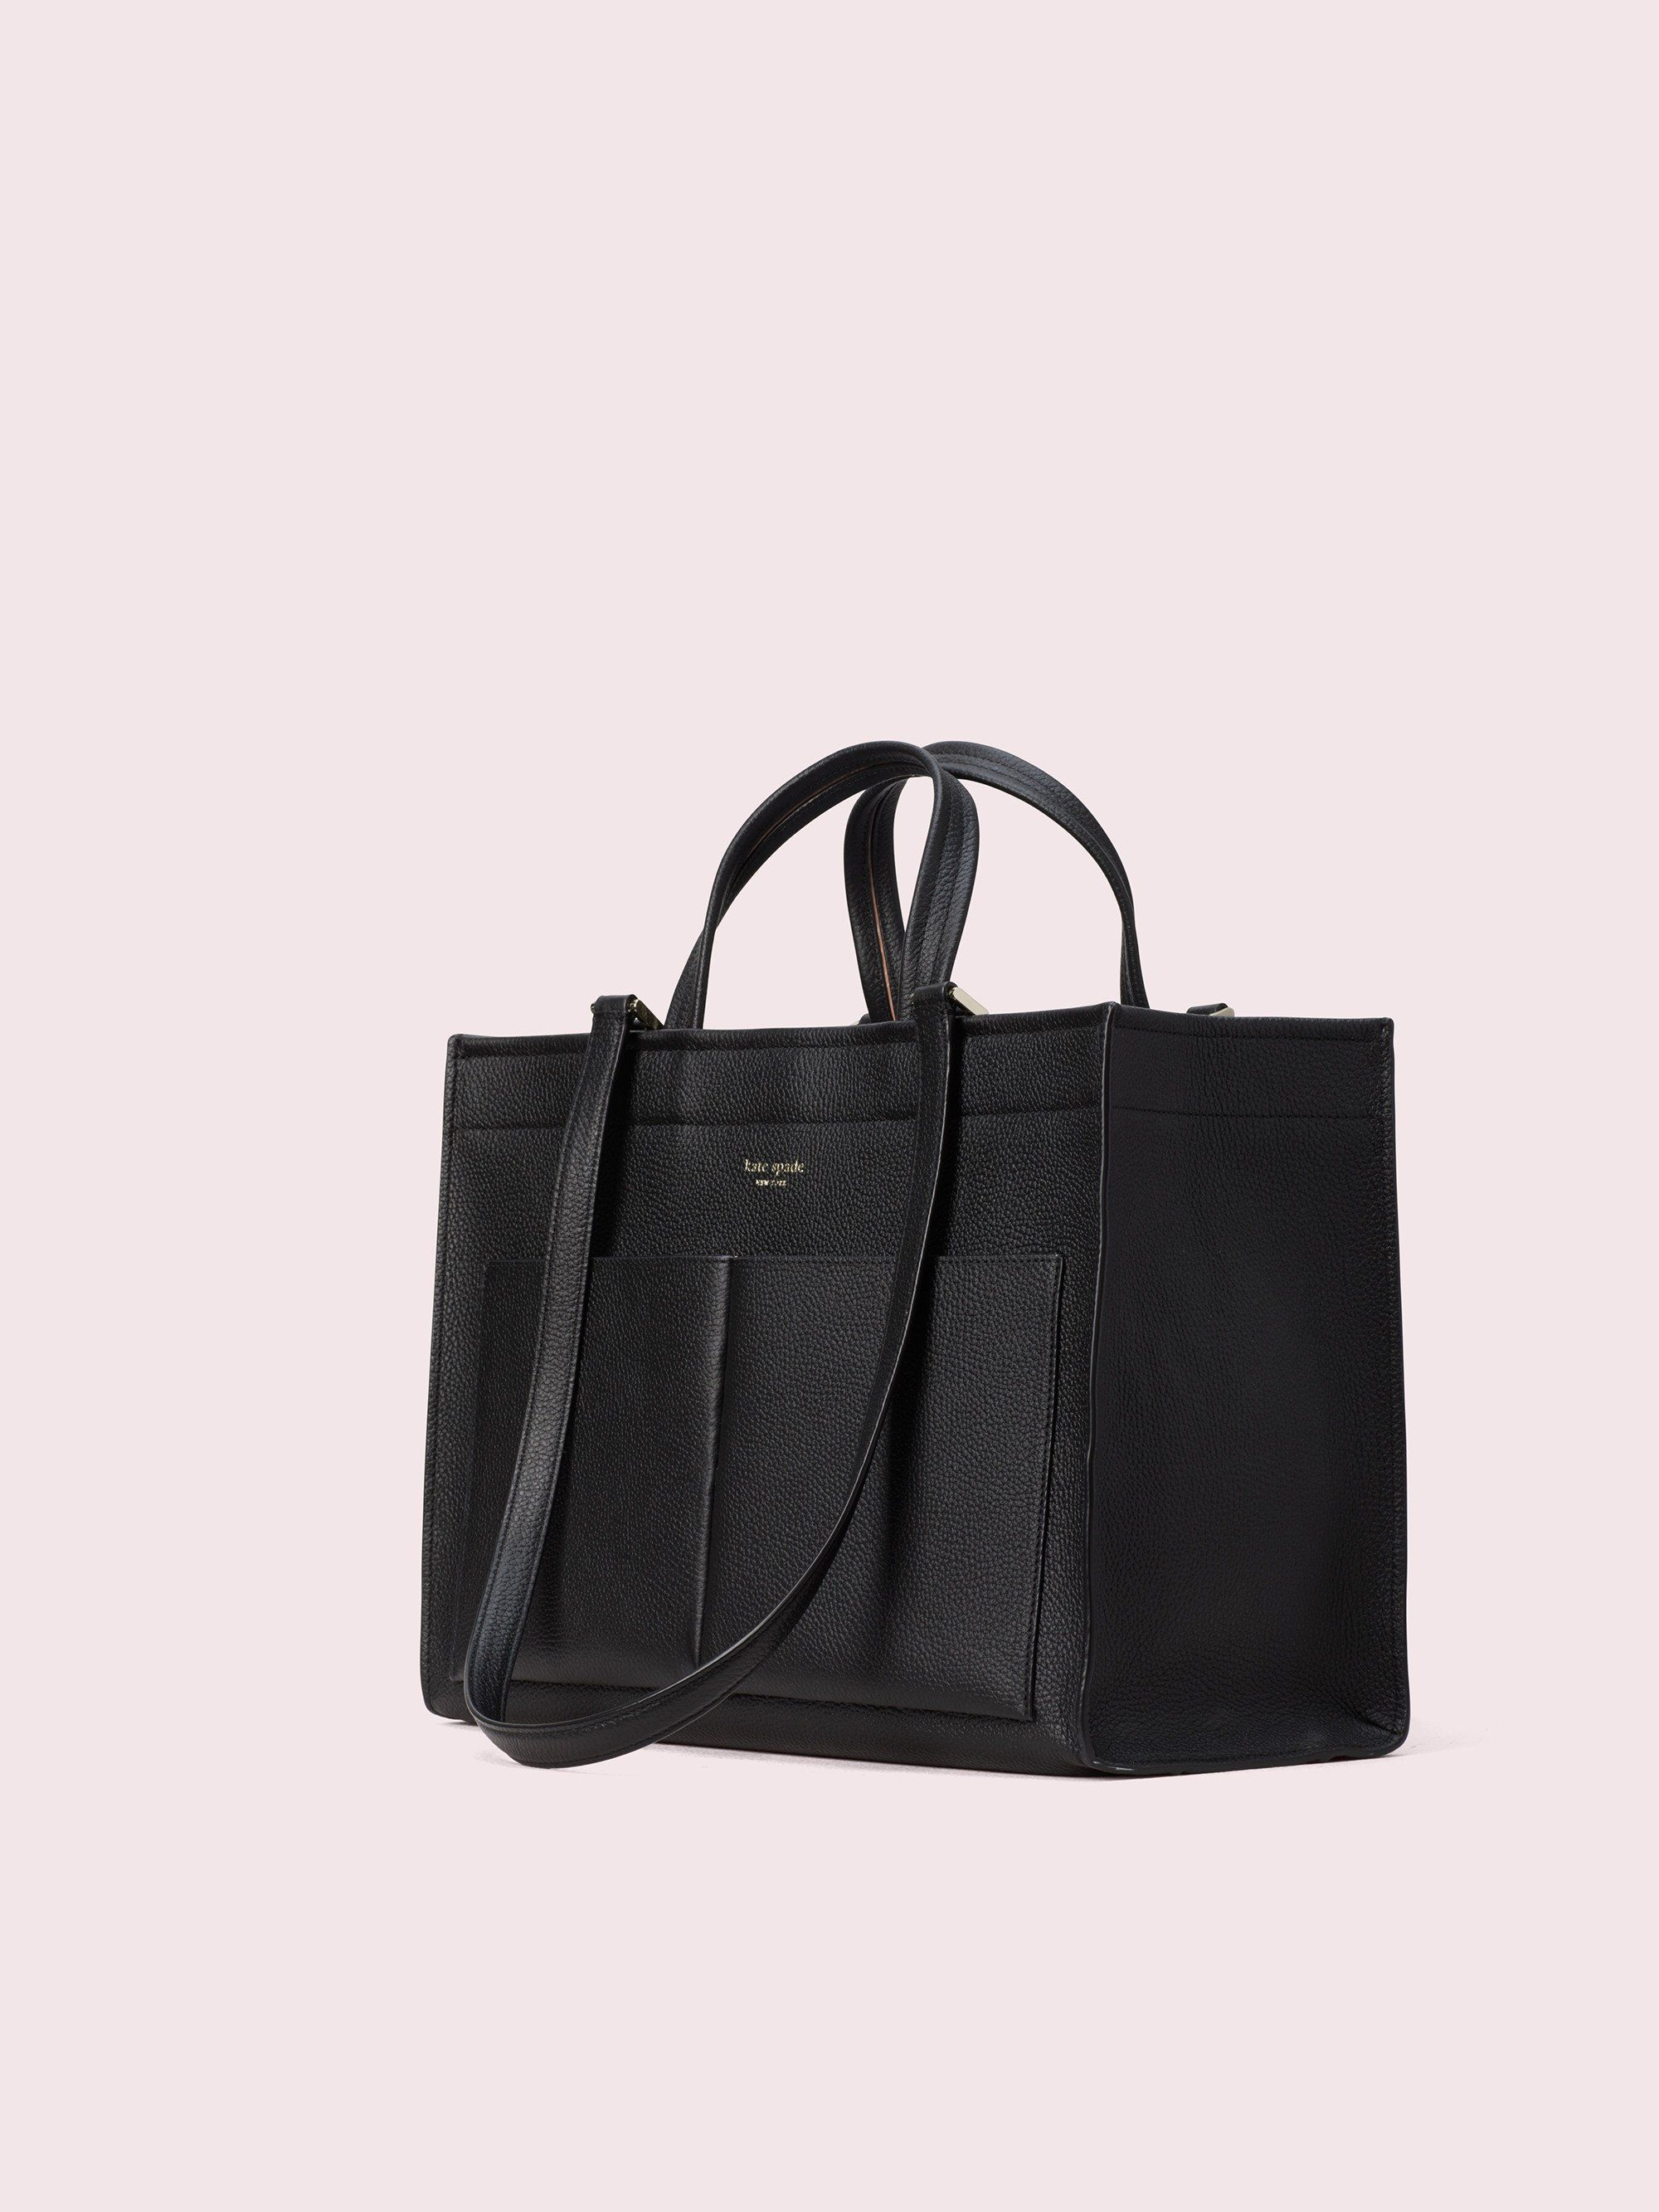 1027acac8c1 Sam large pocket satchel in 2019 | Make it pretty | Satchel, Bags ...